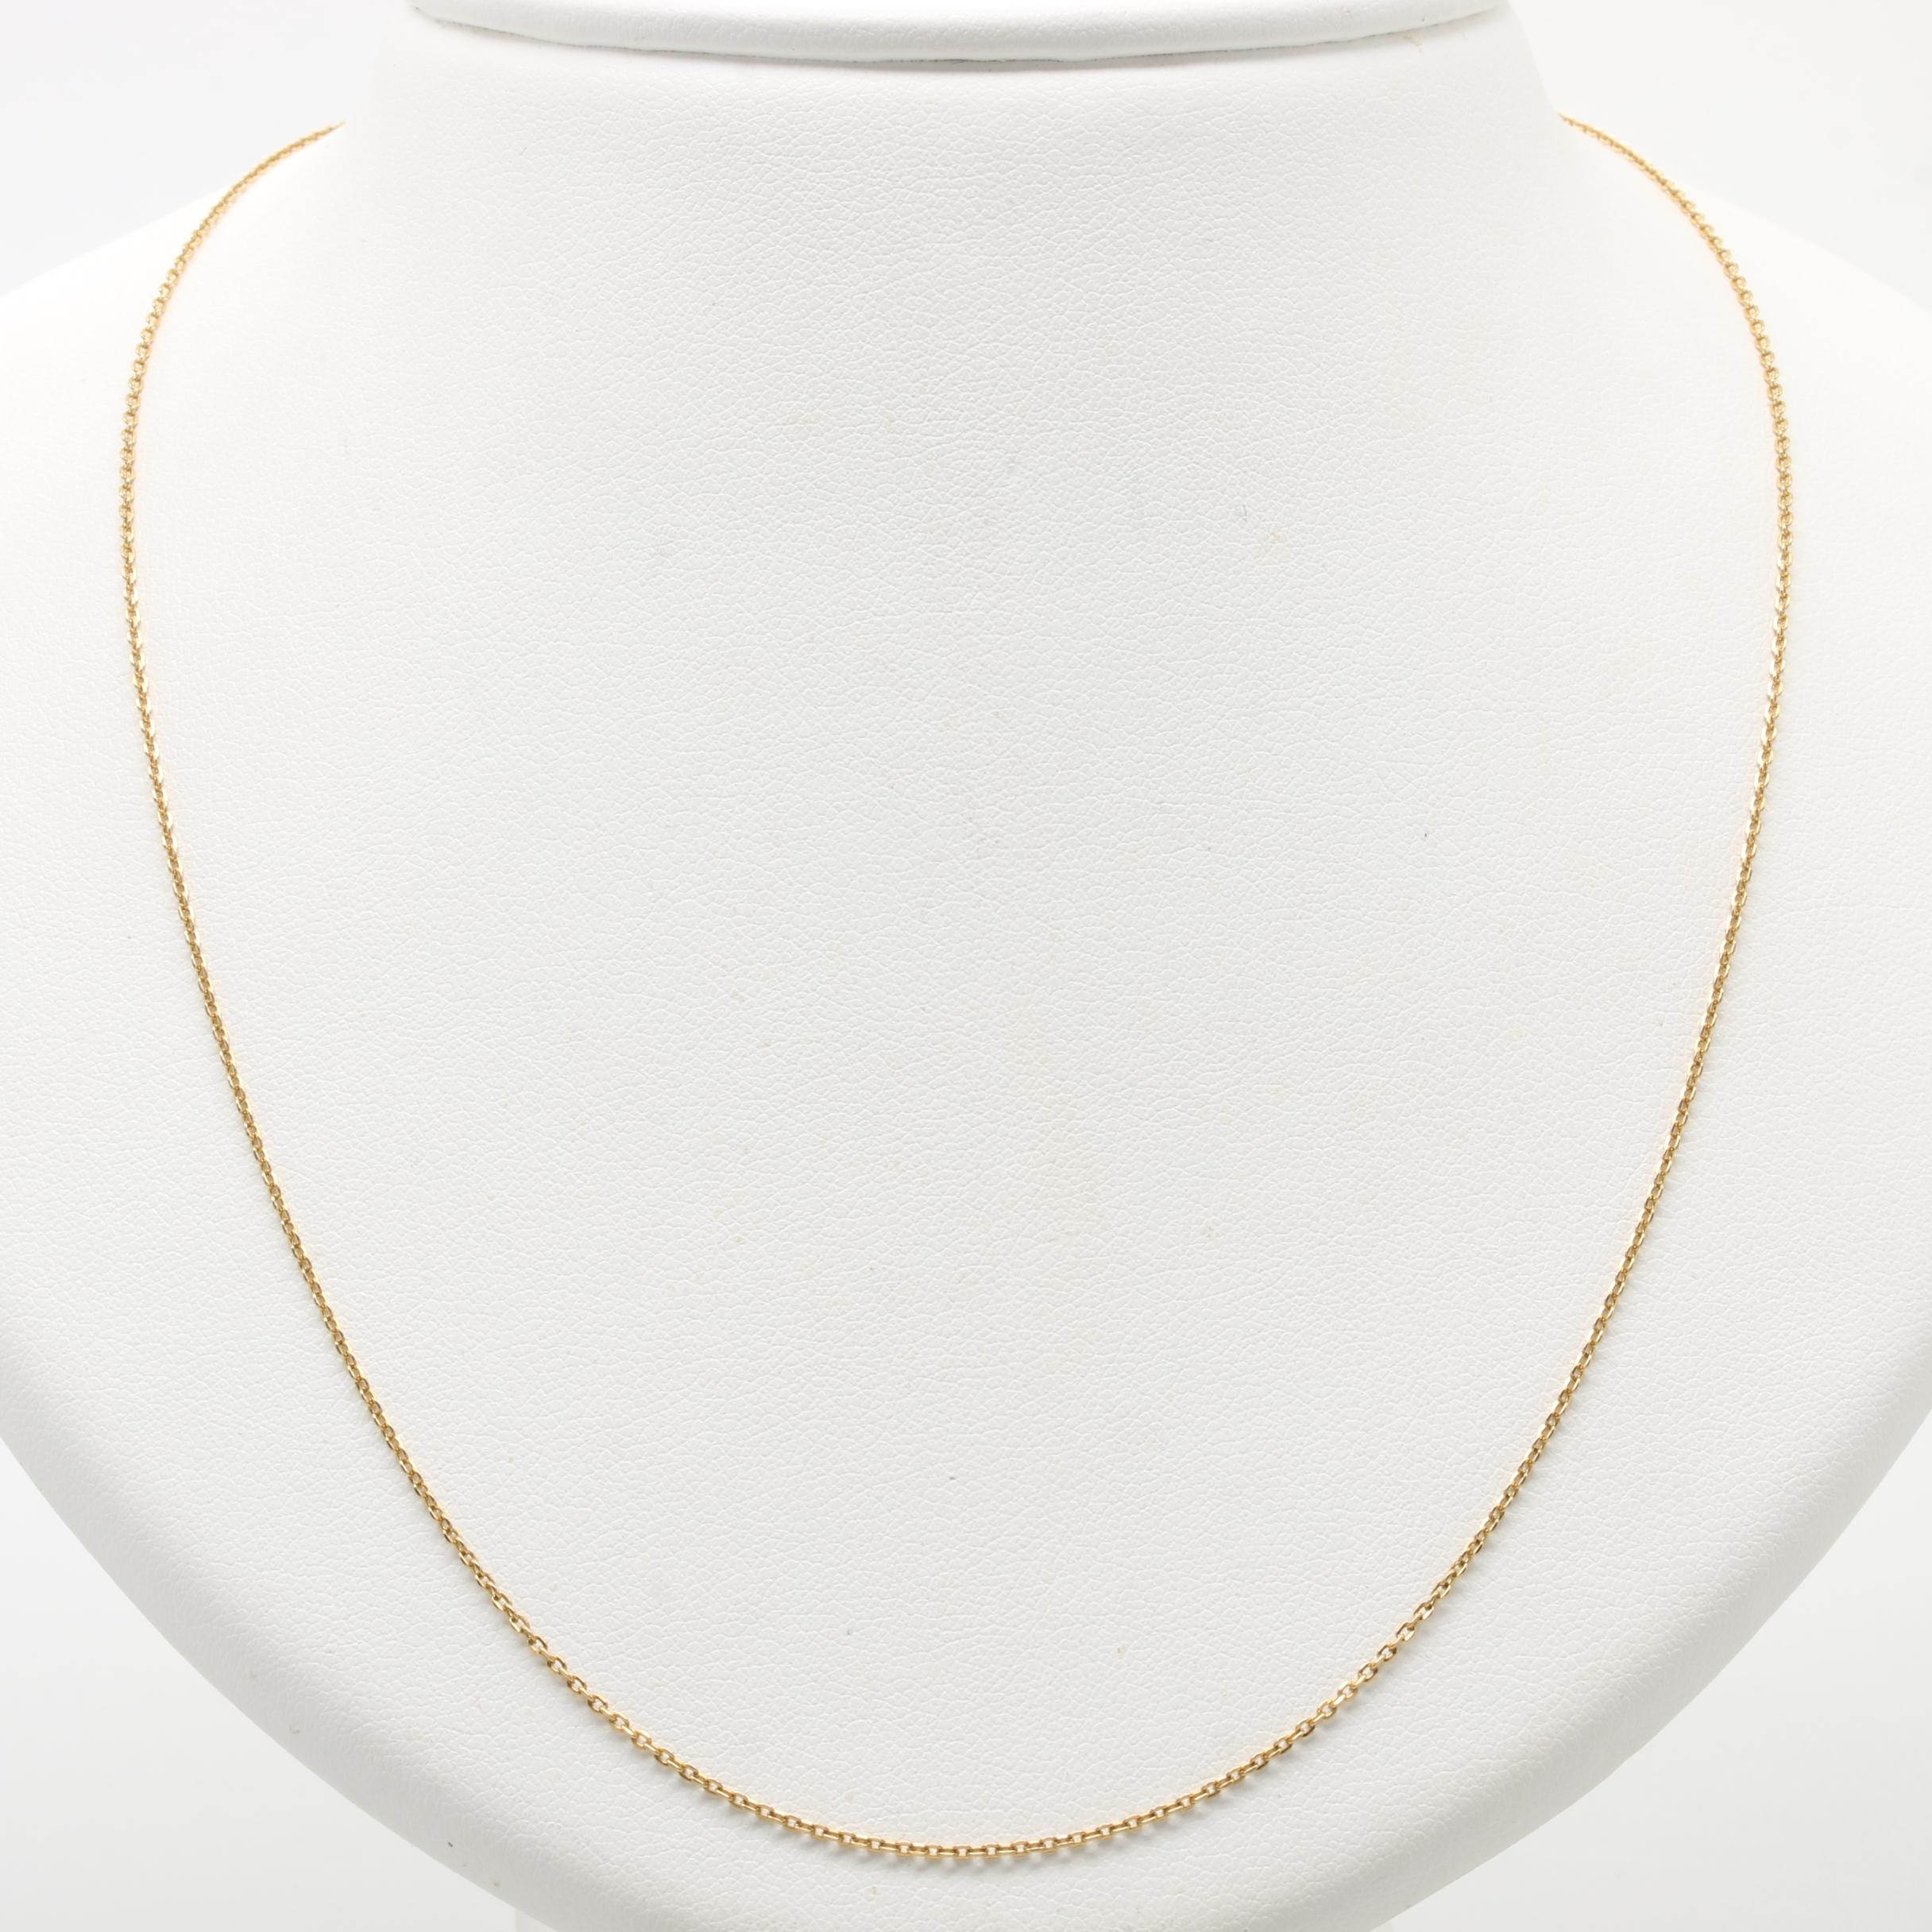 18K Yellow Gold Cable Link Chain Necklace